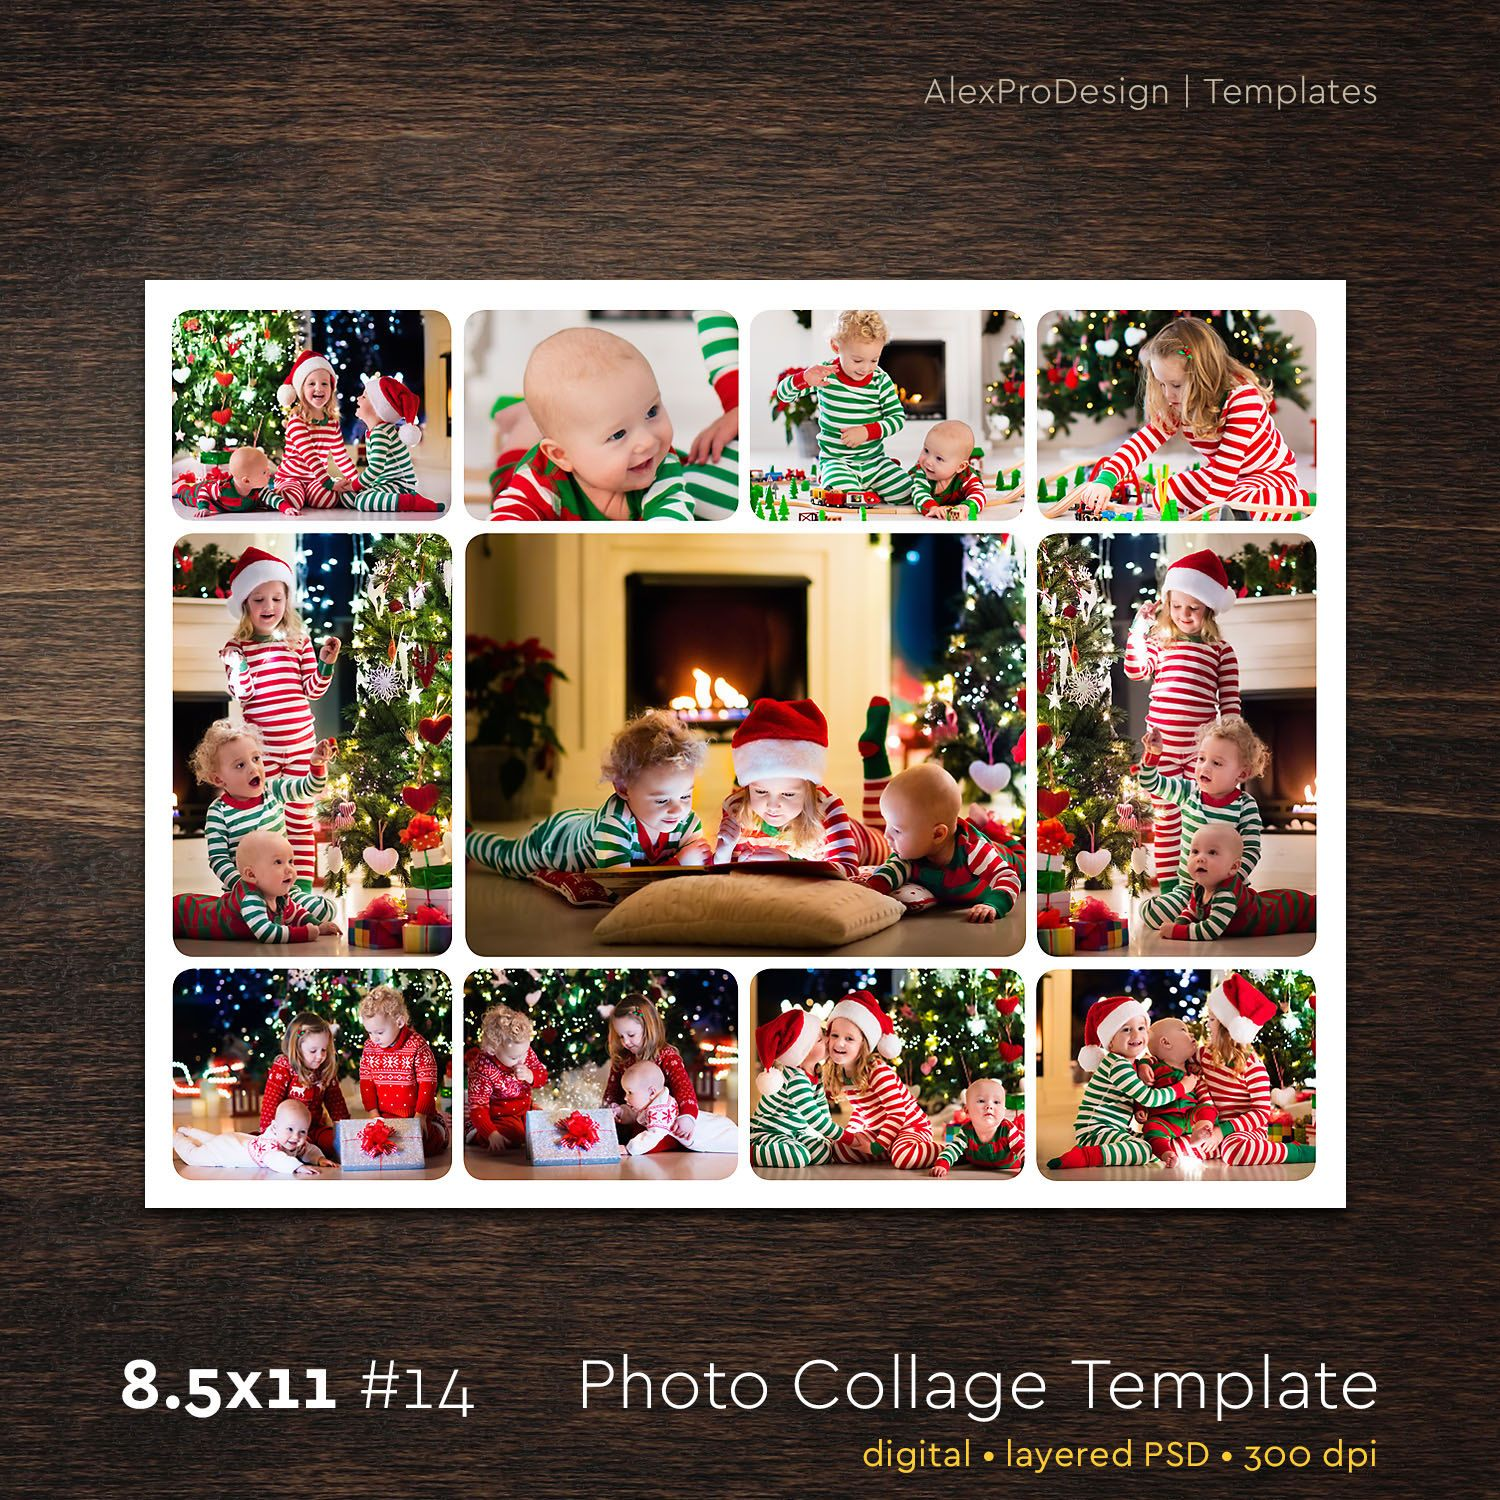 Photo Collage Template 85 X 12 14 11 Photo Storyboard Template